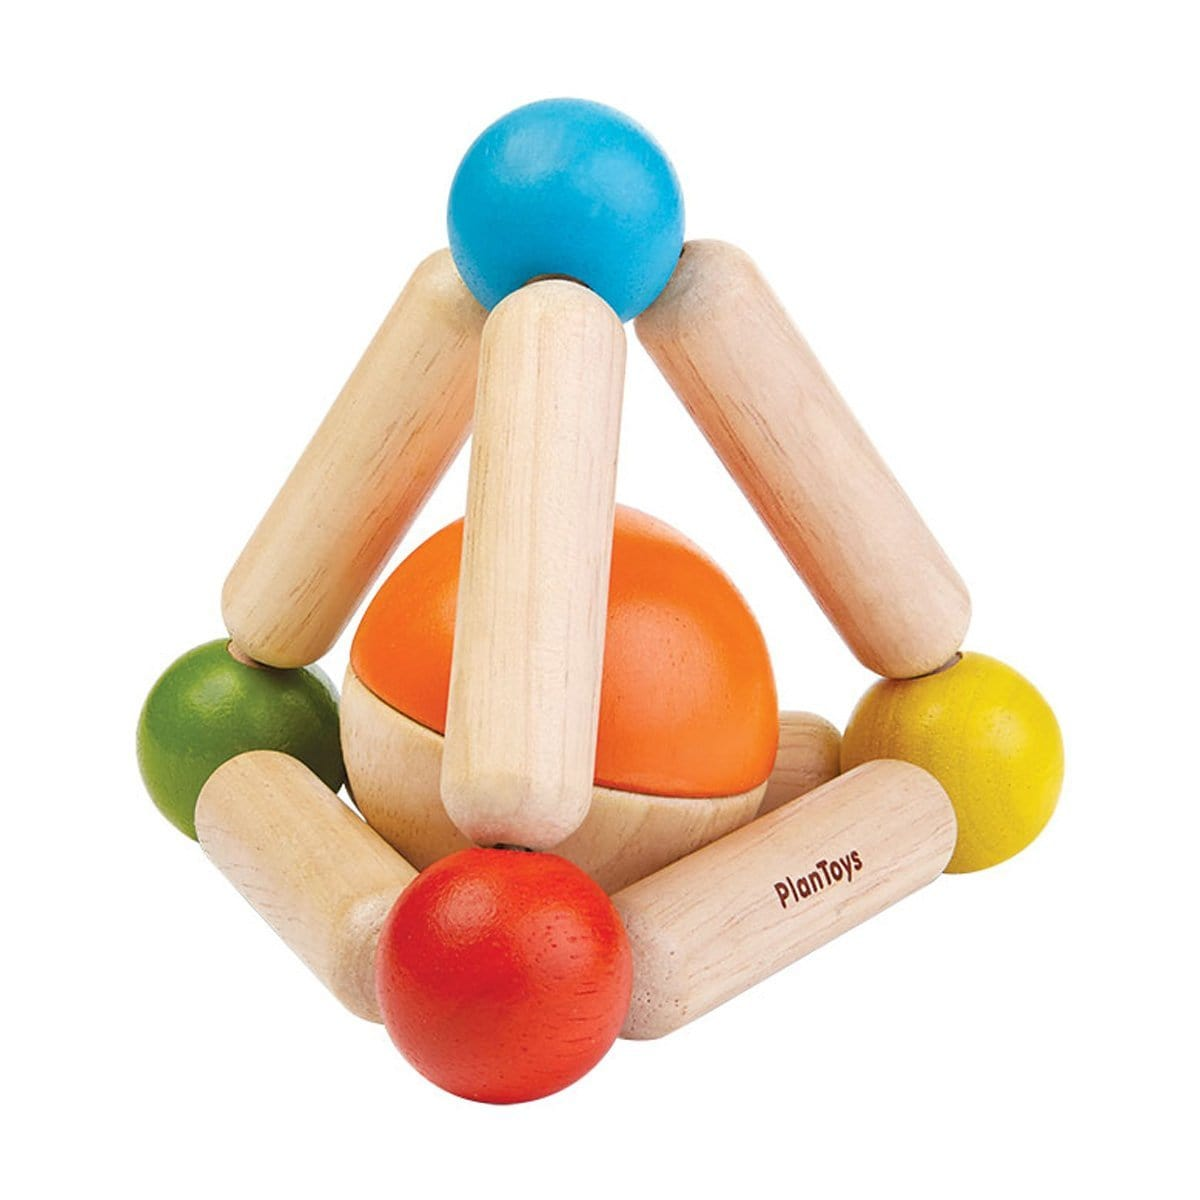 Triangle Clutching Toy Rattle - Plan Toys